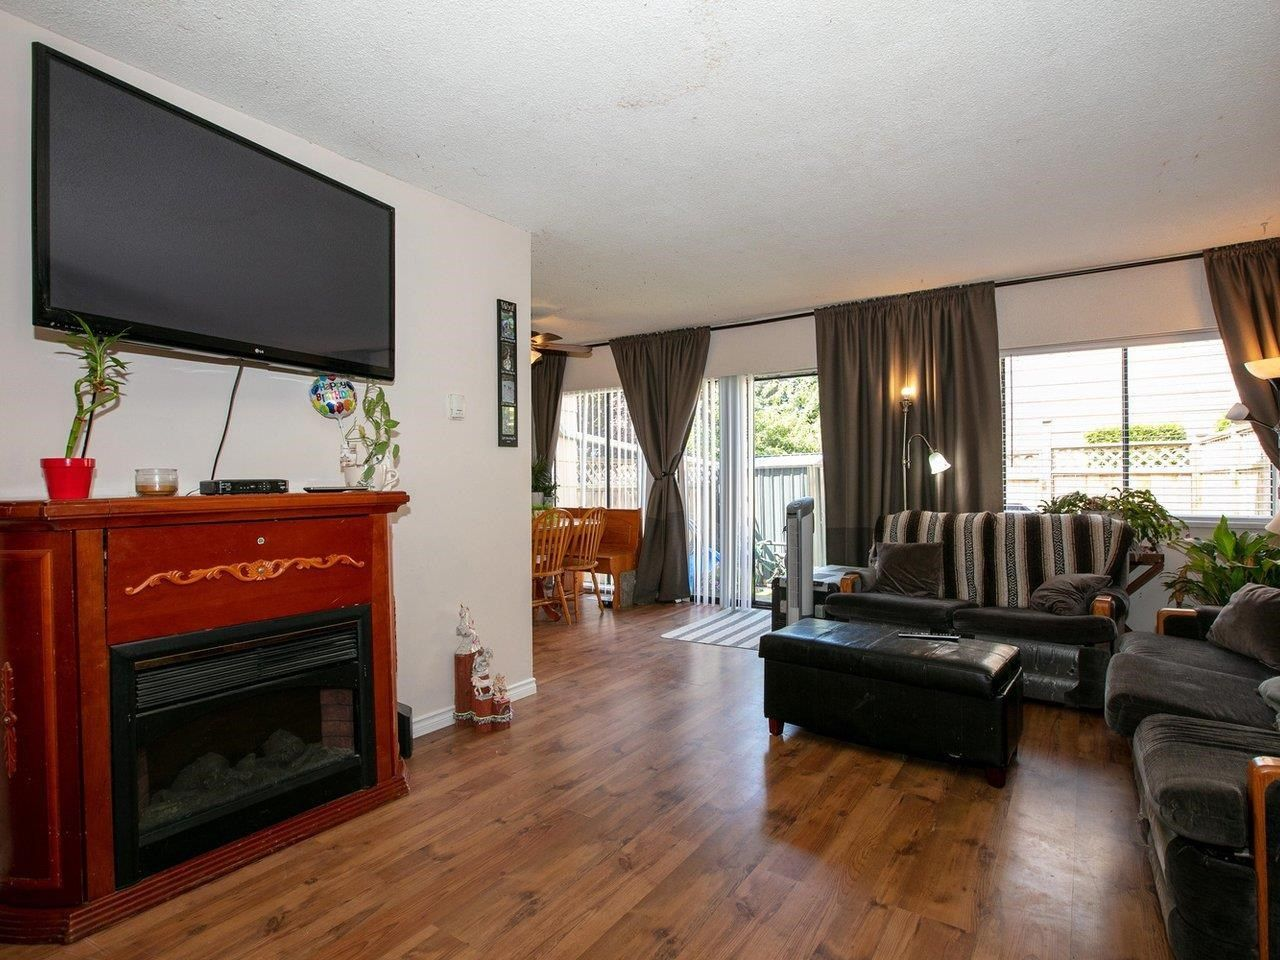 """Photo 2: Photos: 21 10585 153 Street in Surrey: Guildford Townhouse for sale in """"Guildford Mews"""" (North Surrey)  : MLS®# R2593242"""